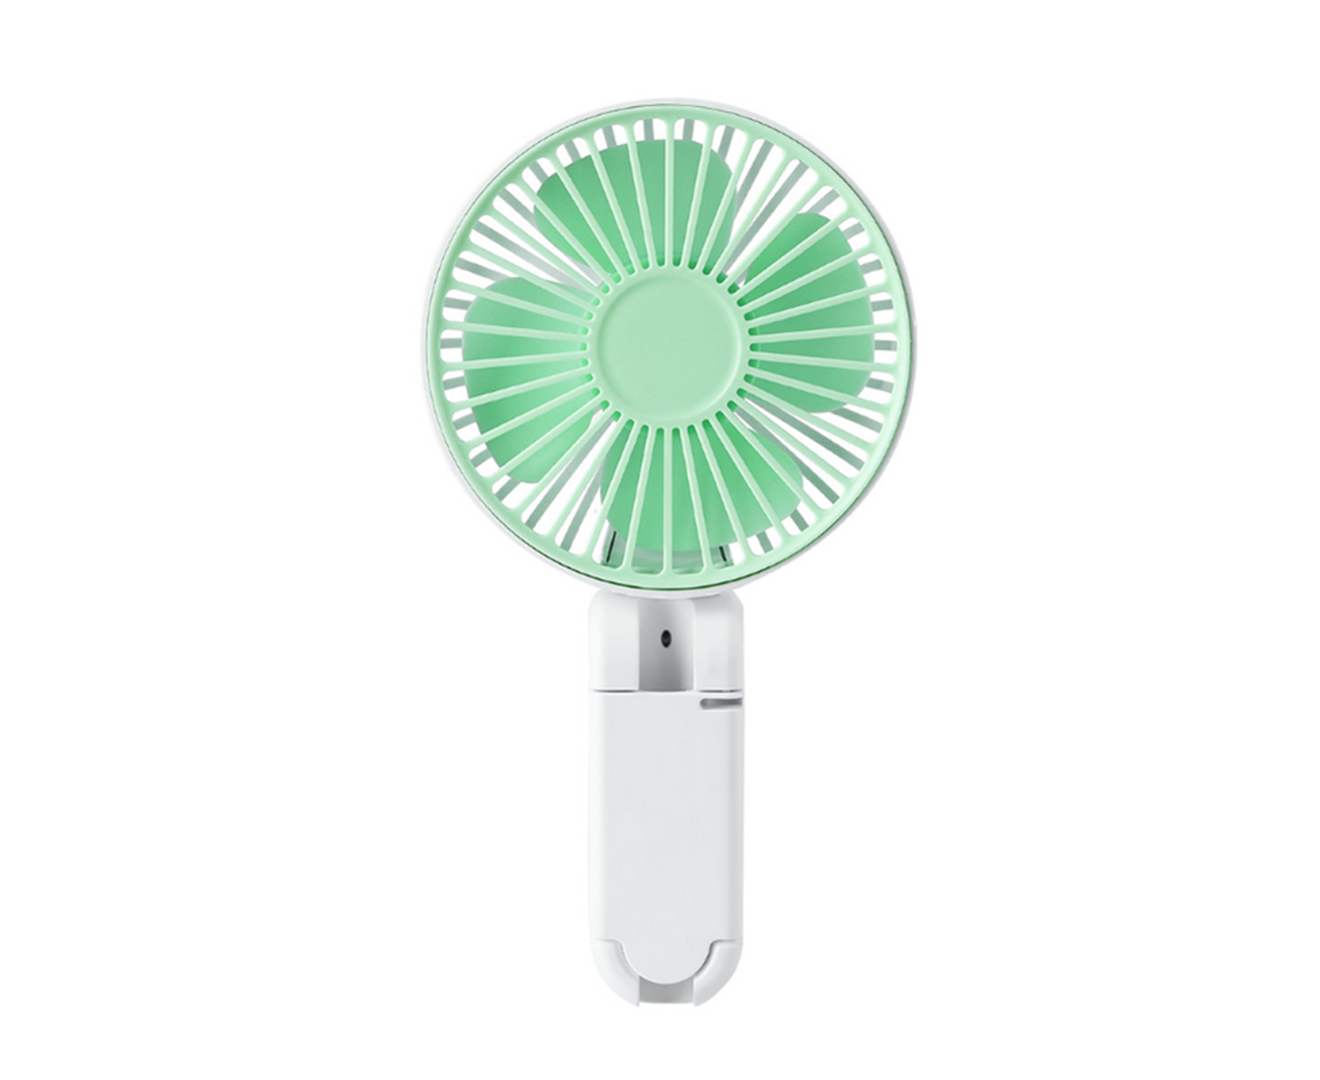 ZQ Portable USB Rechargeable Handheld Fan,Student Dormitory Office Desk Fan with Night Light,A